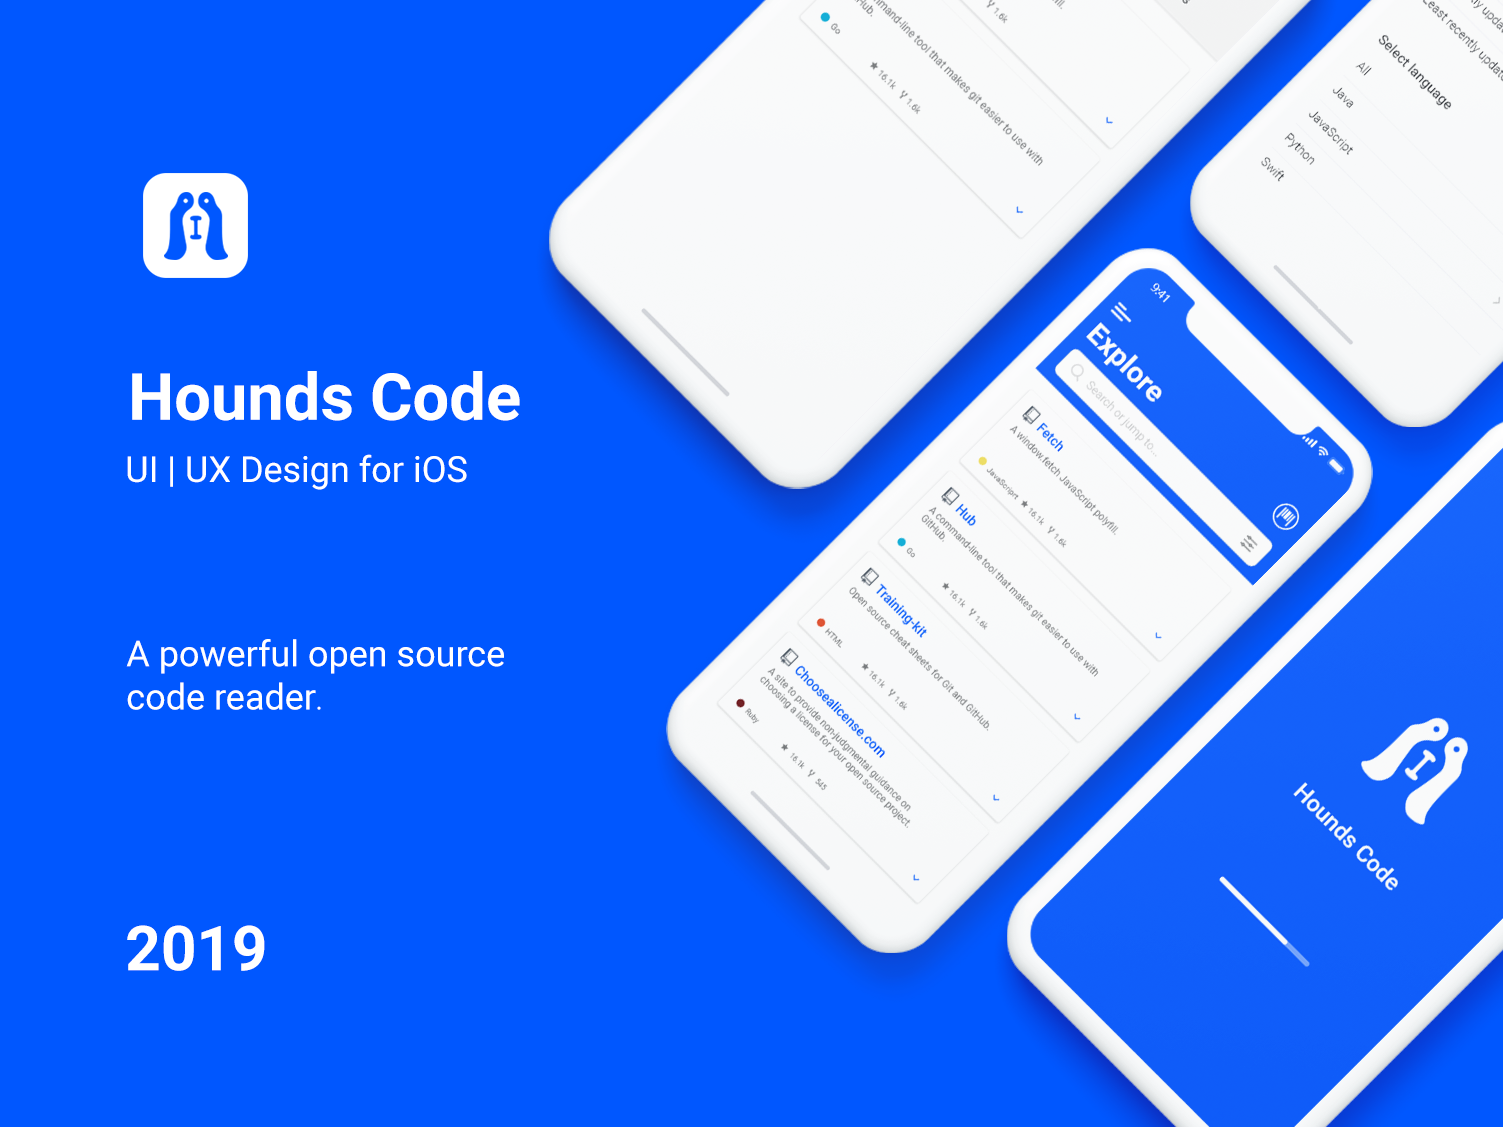 Hounds Code app | UI UX Design by Maram Sayma on Dribbble